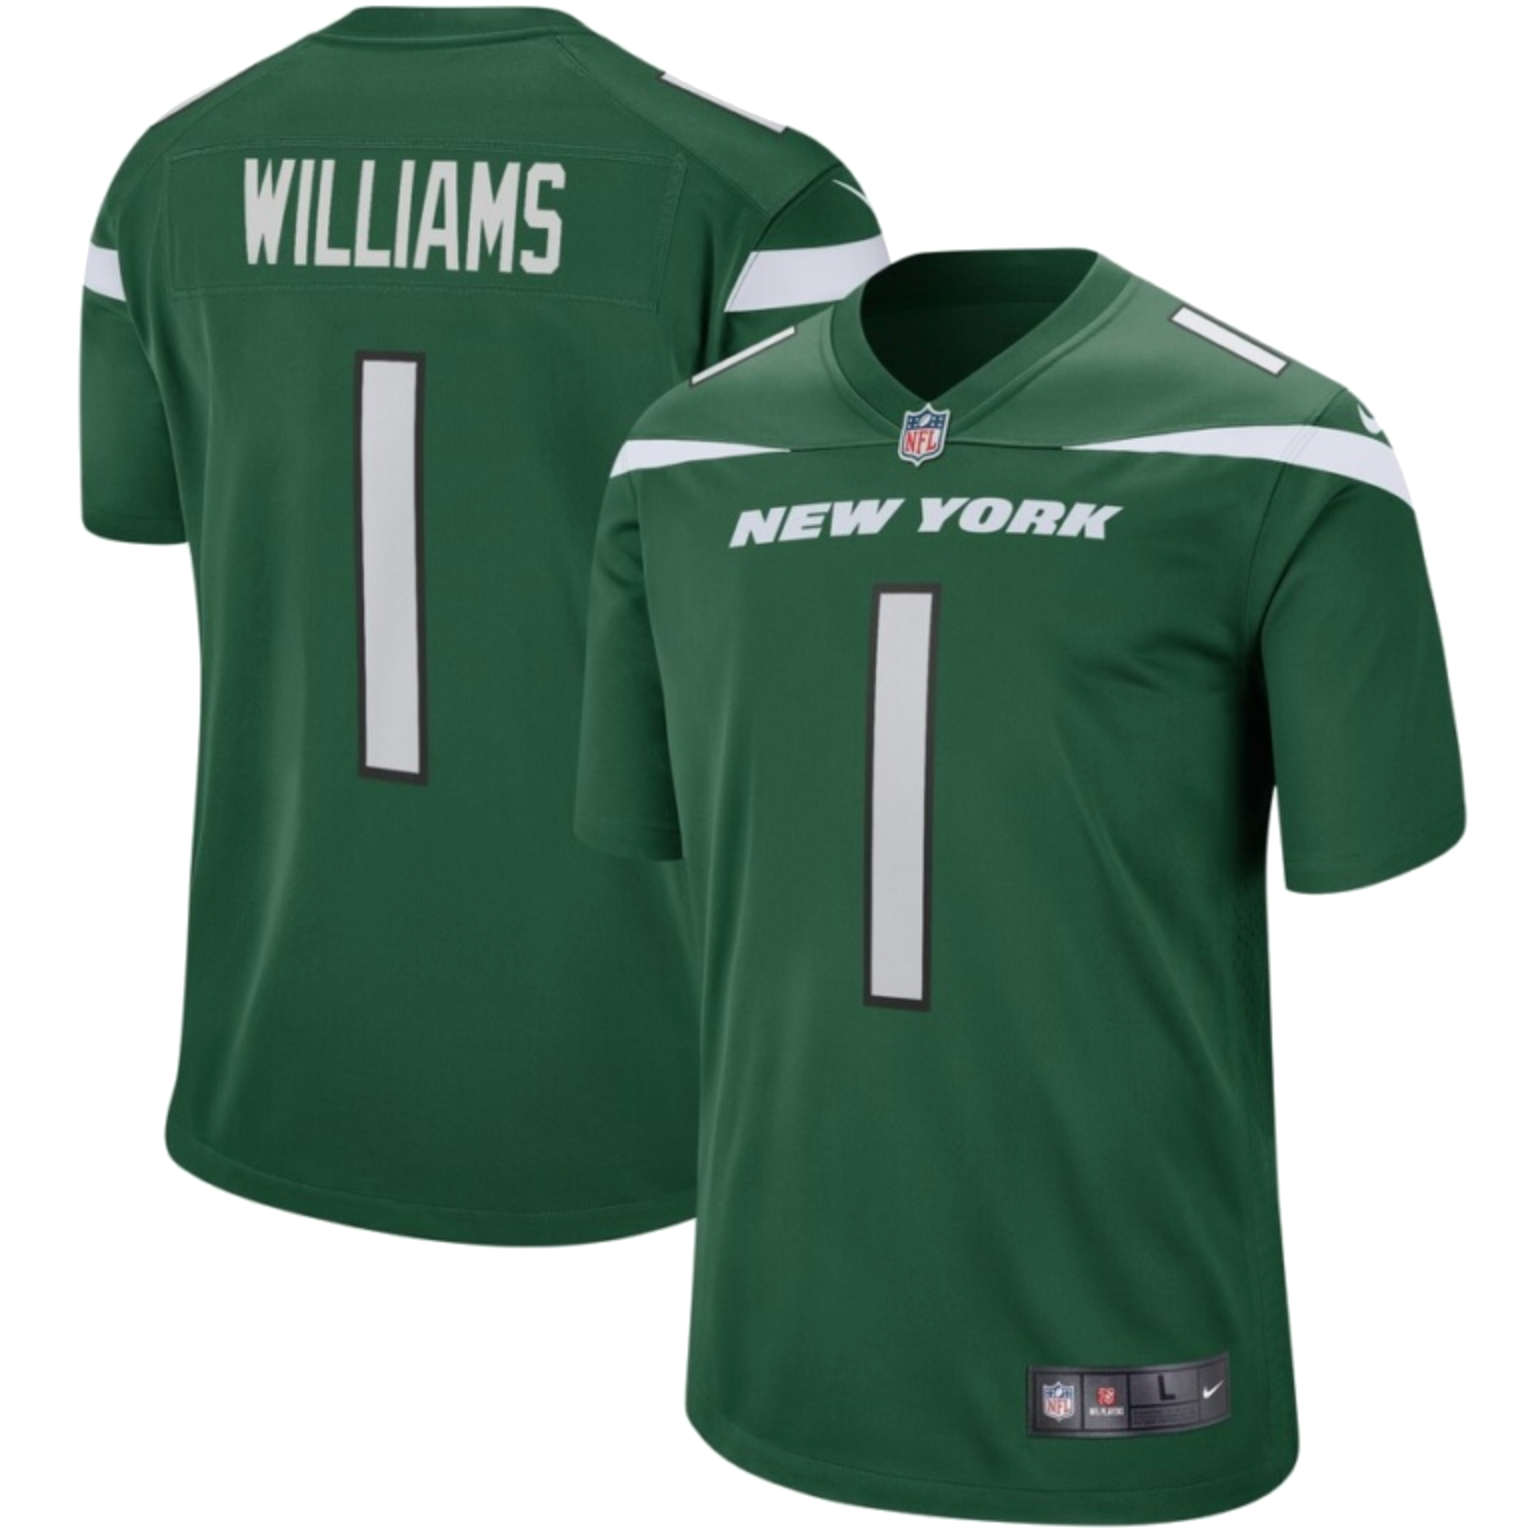 Quinnen Williams New York Jets Nike 2019 NFL Draft First Round Pick Game Jersey